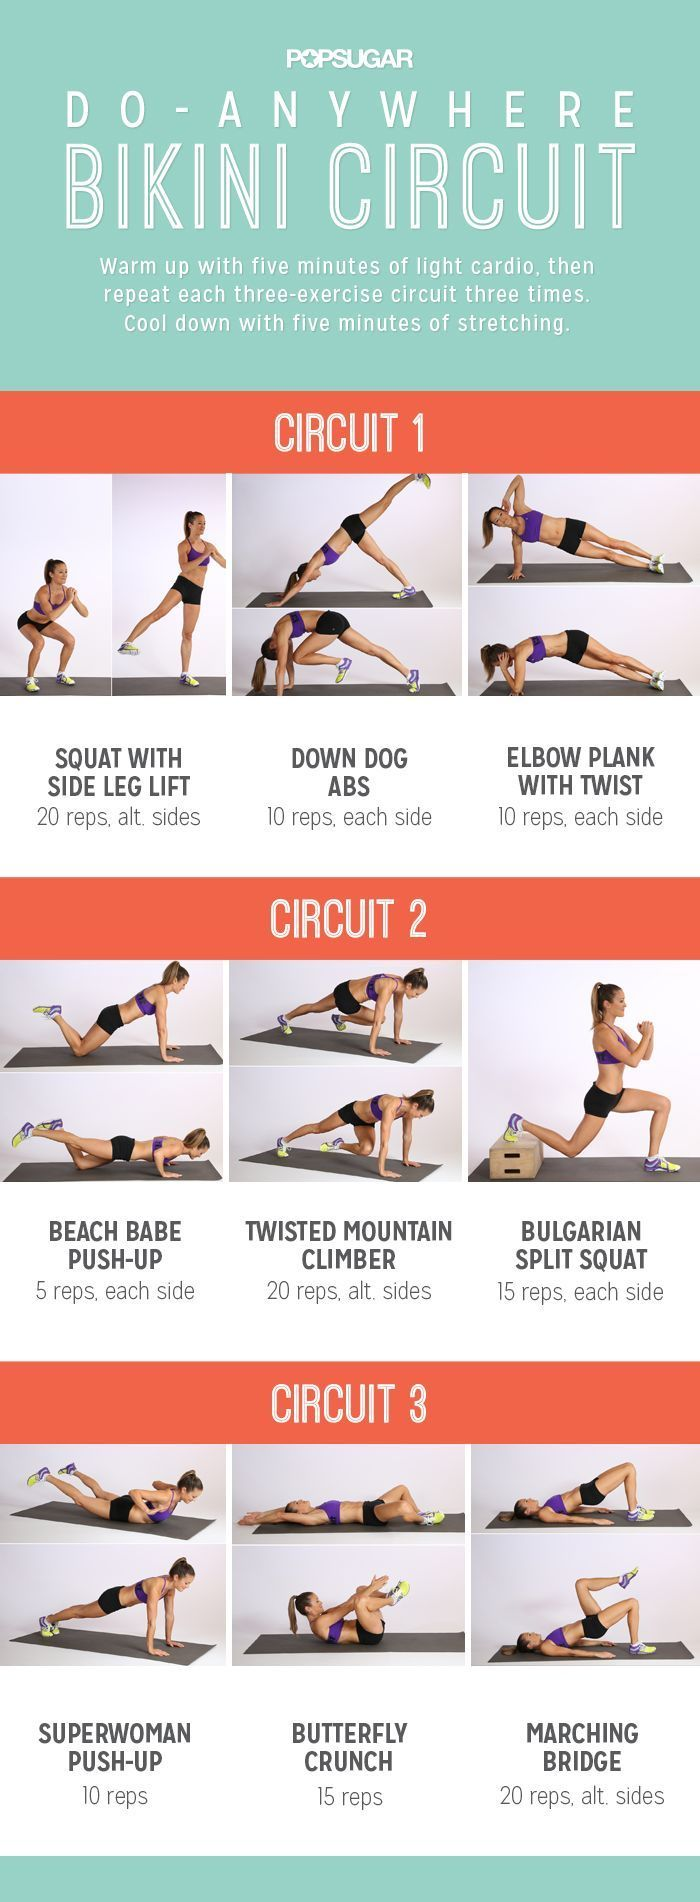 I love that I can do this bodyweight workout anywhere. It burns some calories while building muscle and toning all those areas I want to tighten before putting on a bikini.